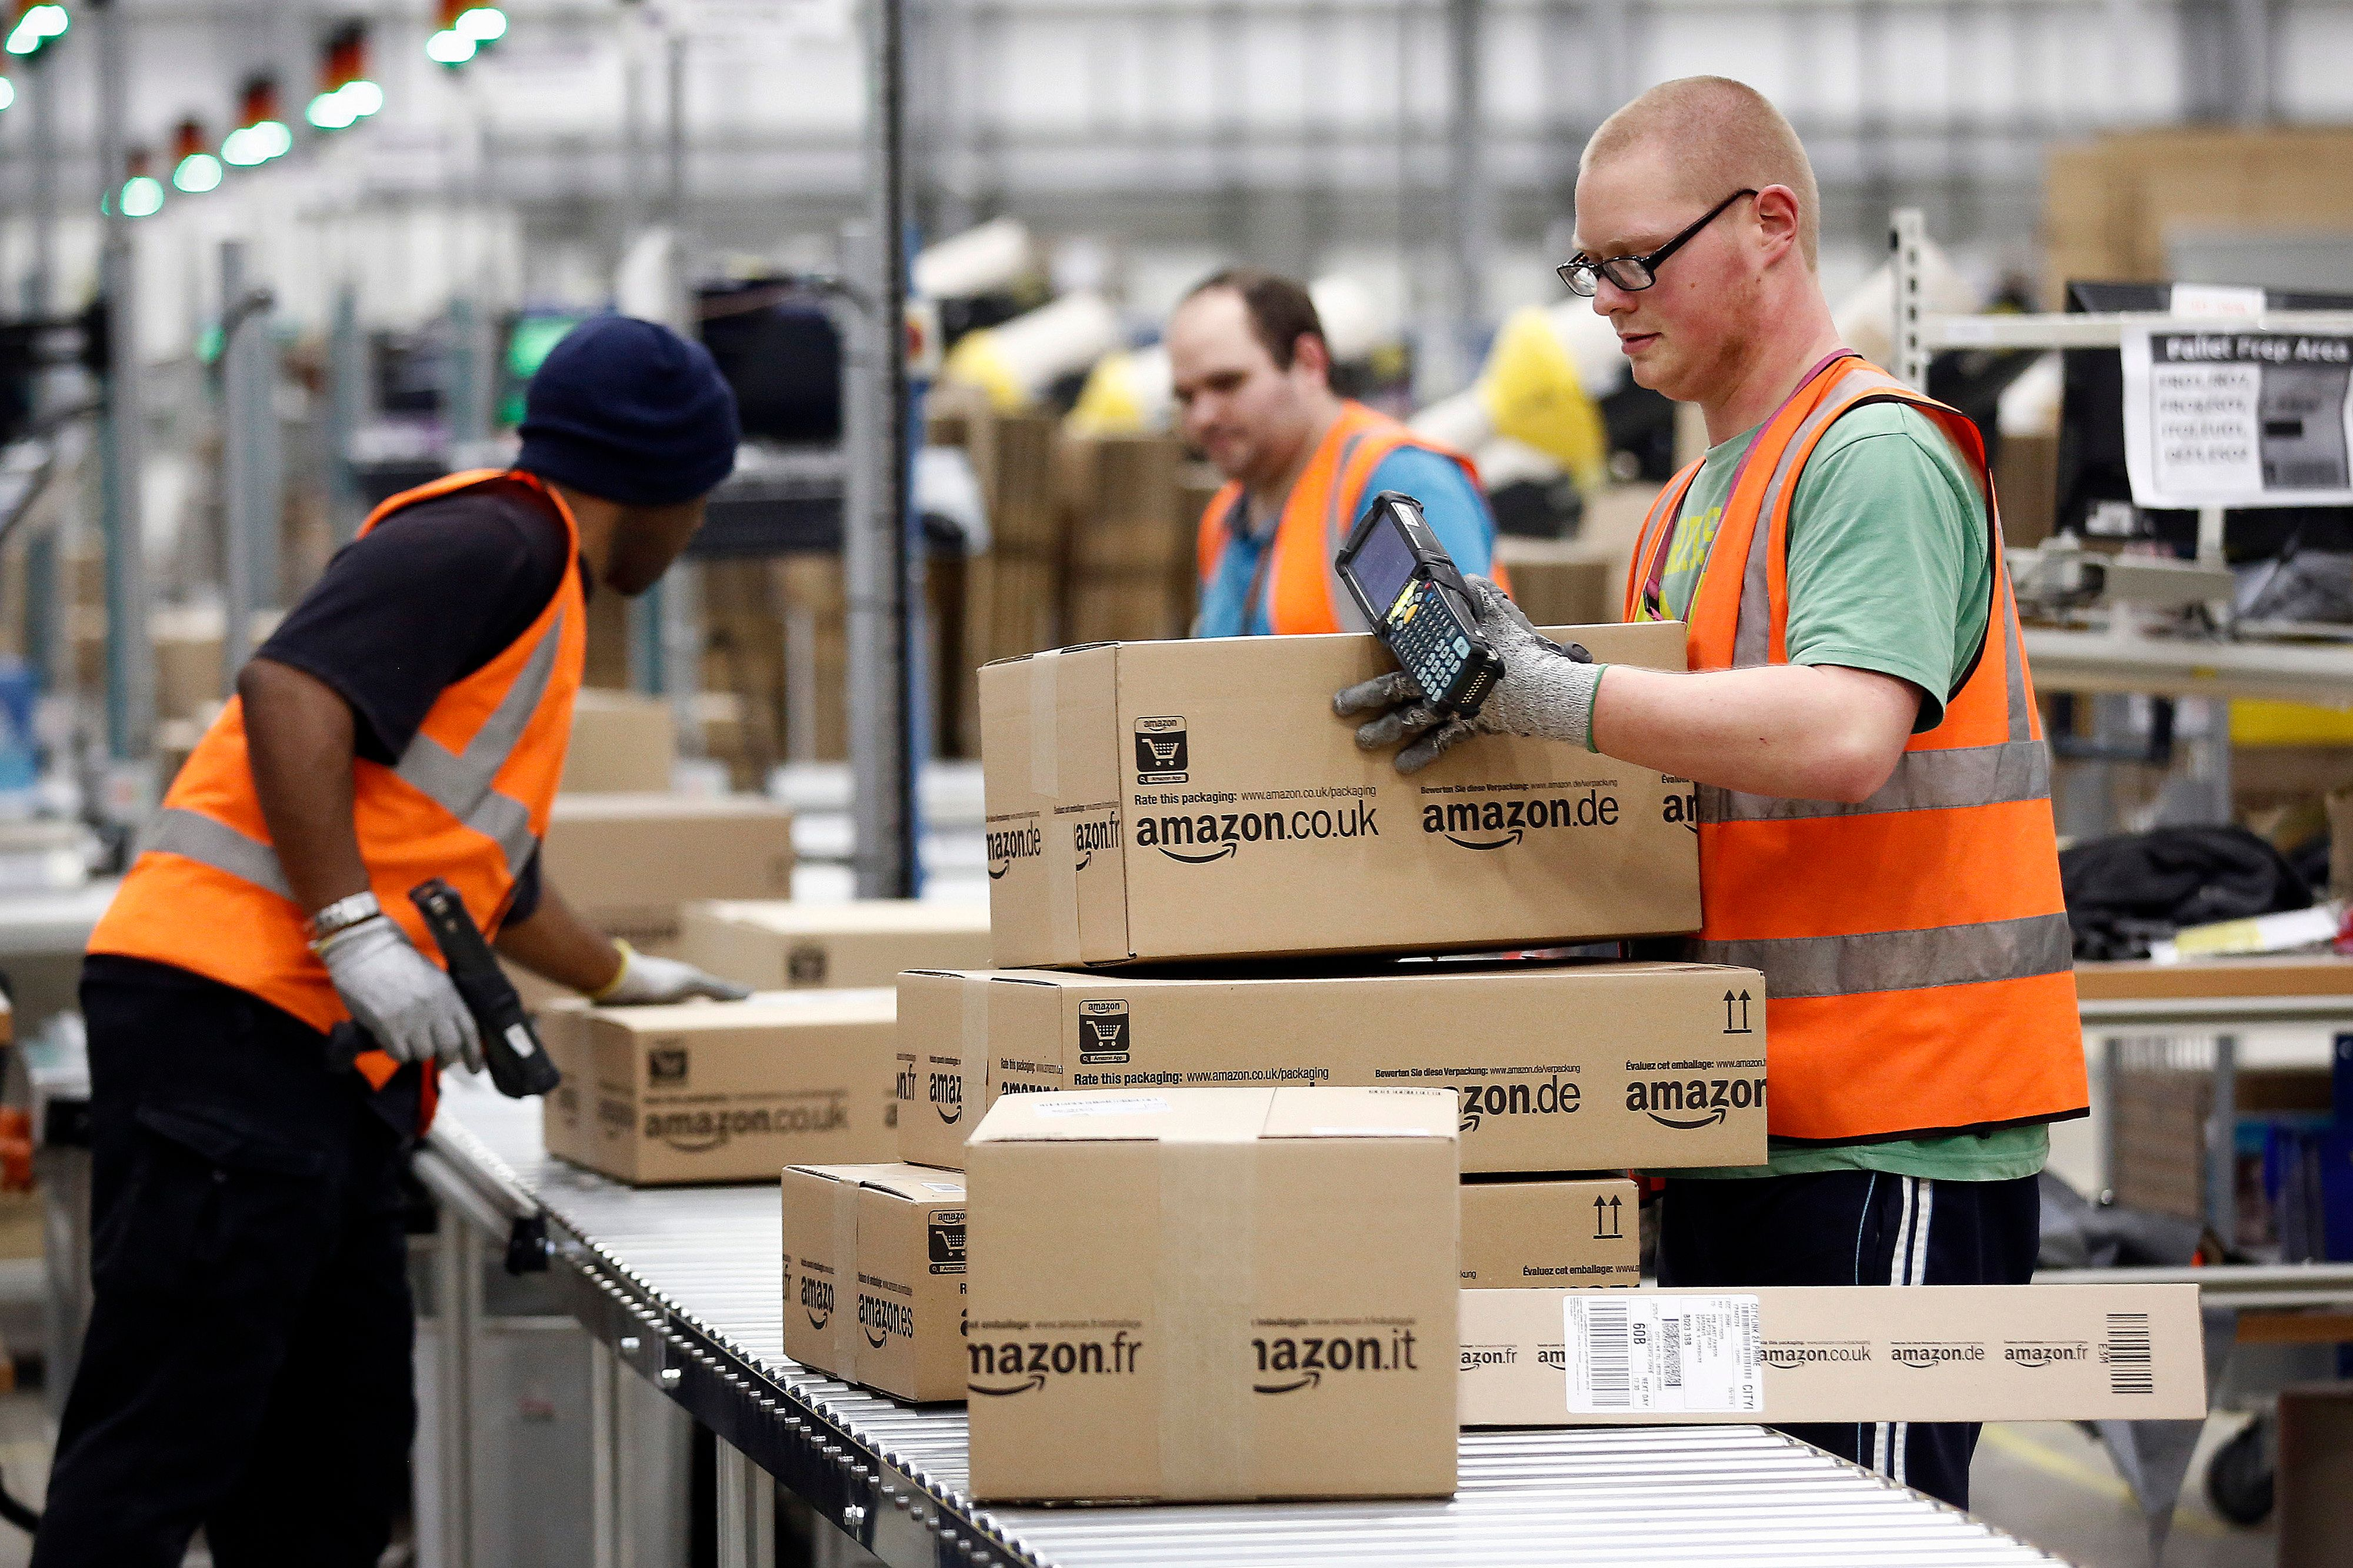 Amazon will raise company's minimum wage to $15 for all United States employees